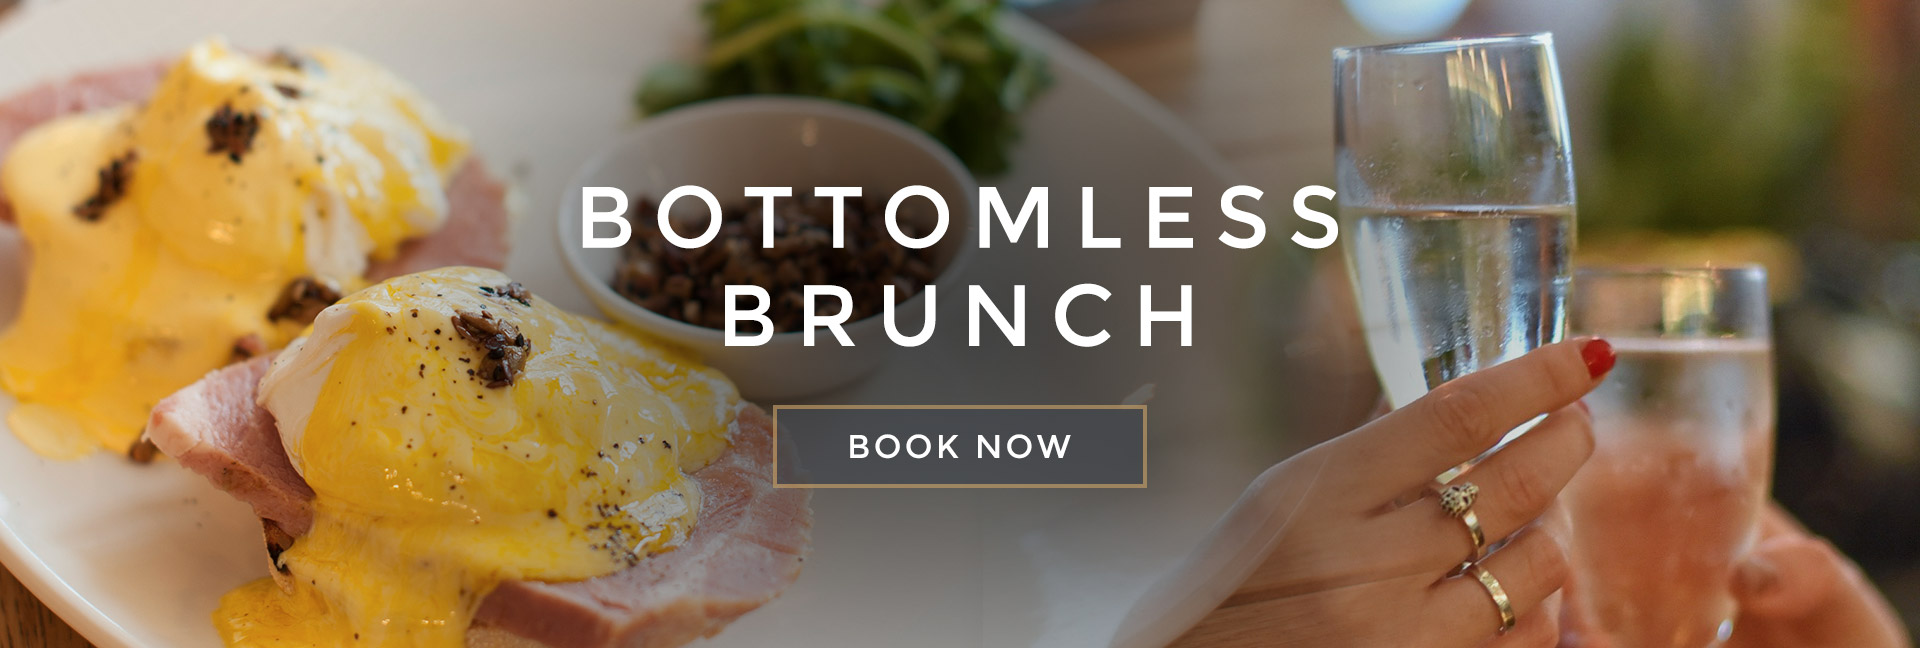 Bottomless Brunch at All Bar One Newhall Street Birmingham - Book now